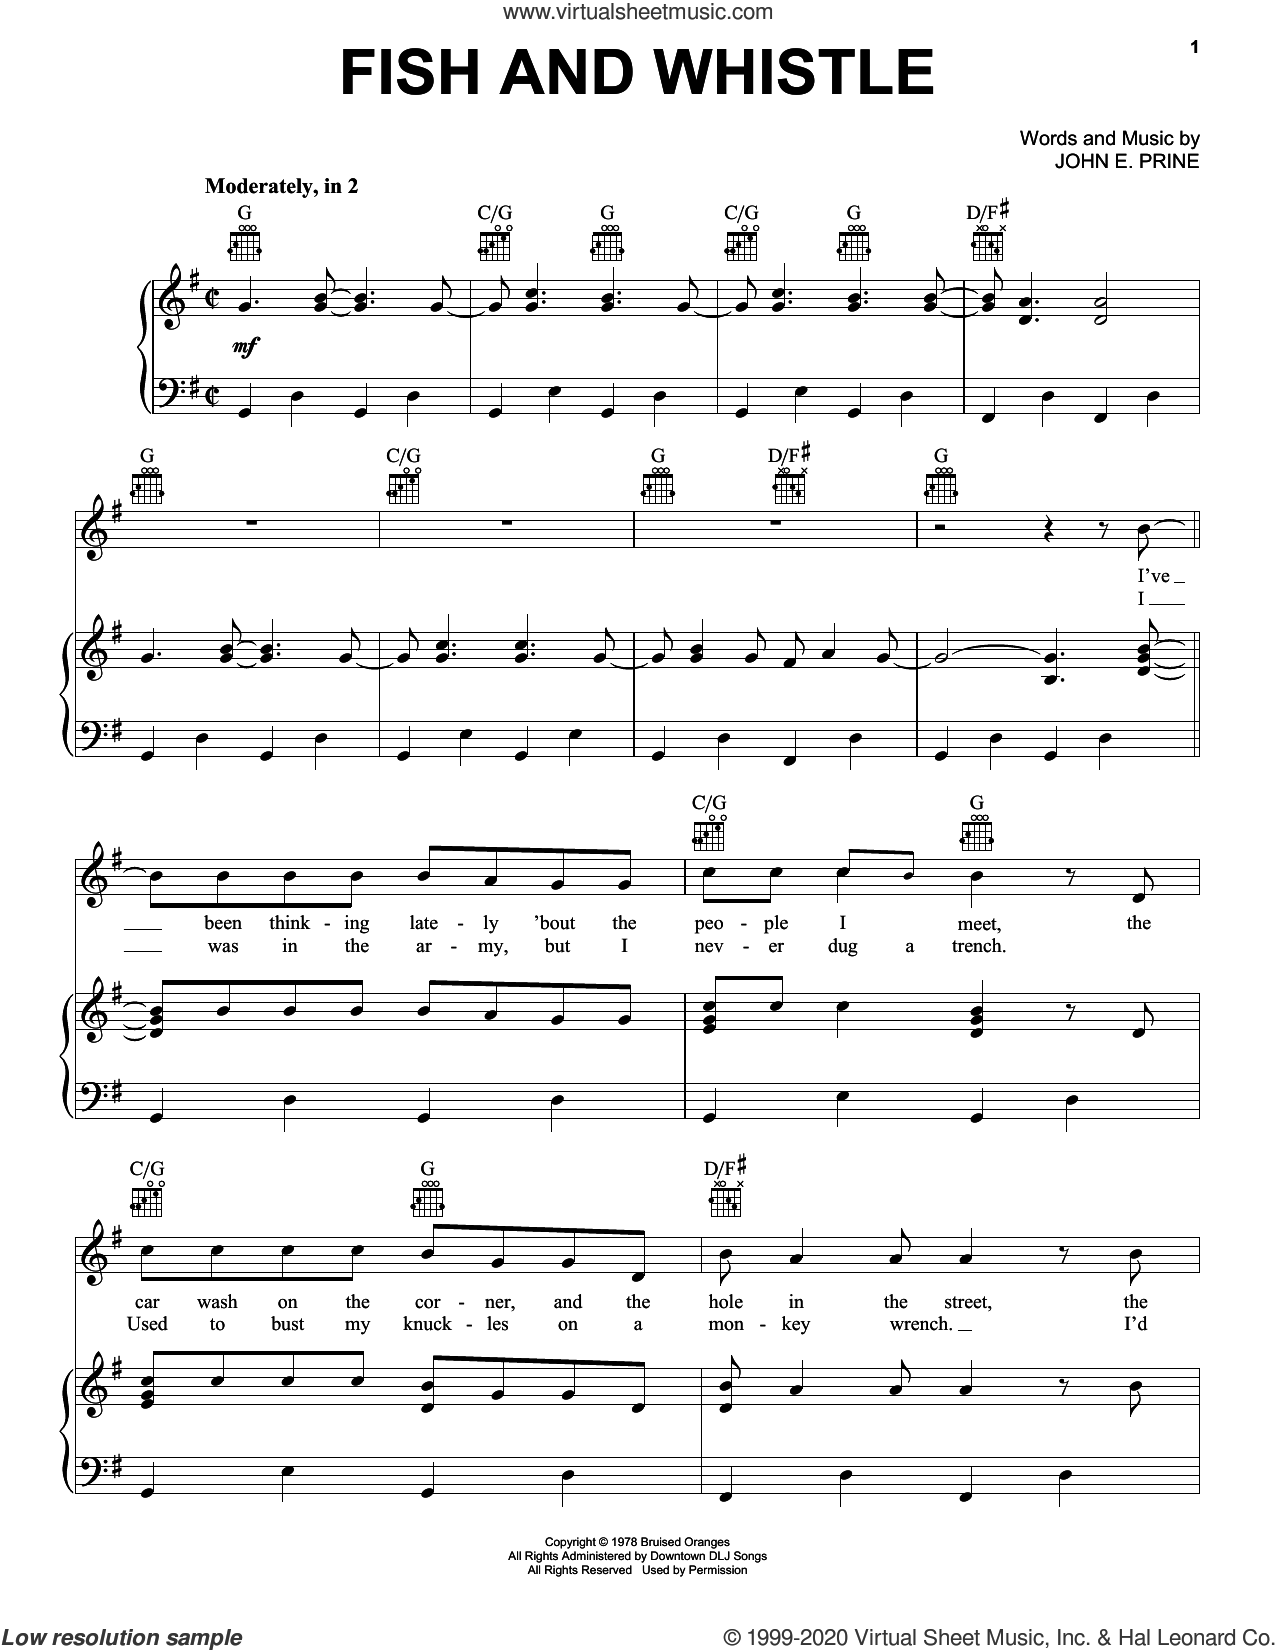 Fish And Whistle sheet music for voice, piano or guitar by John Prine and John E. Prine, intermediate skill level